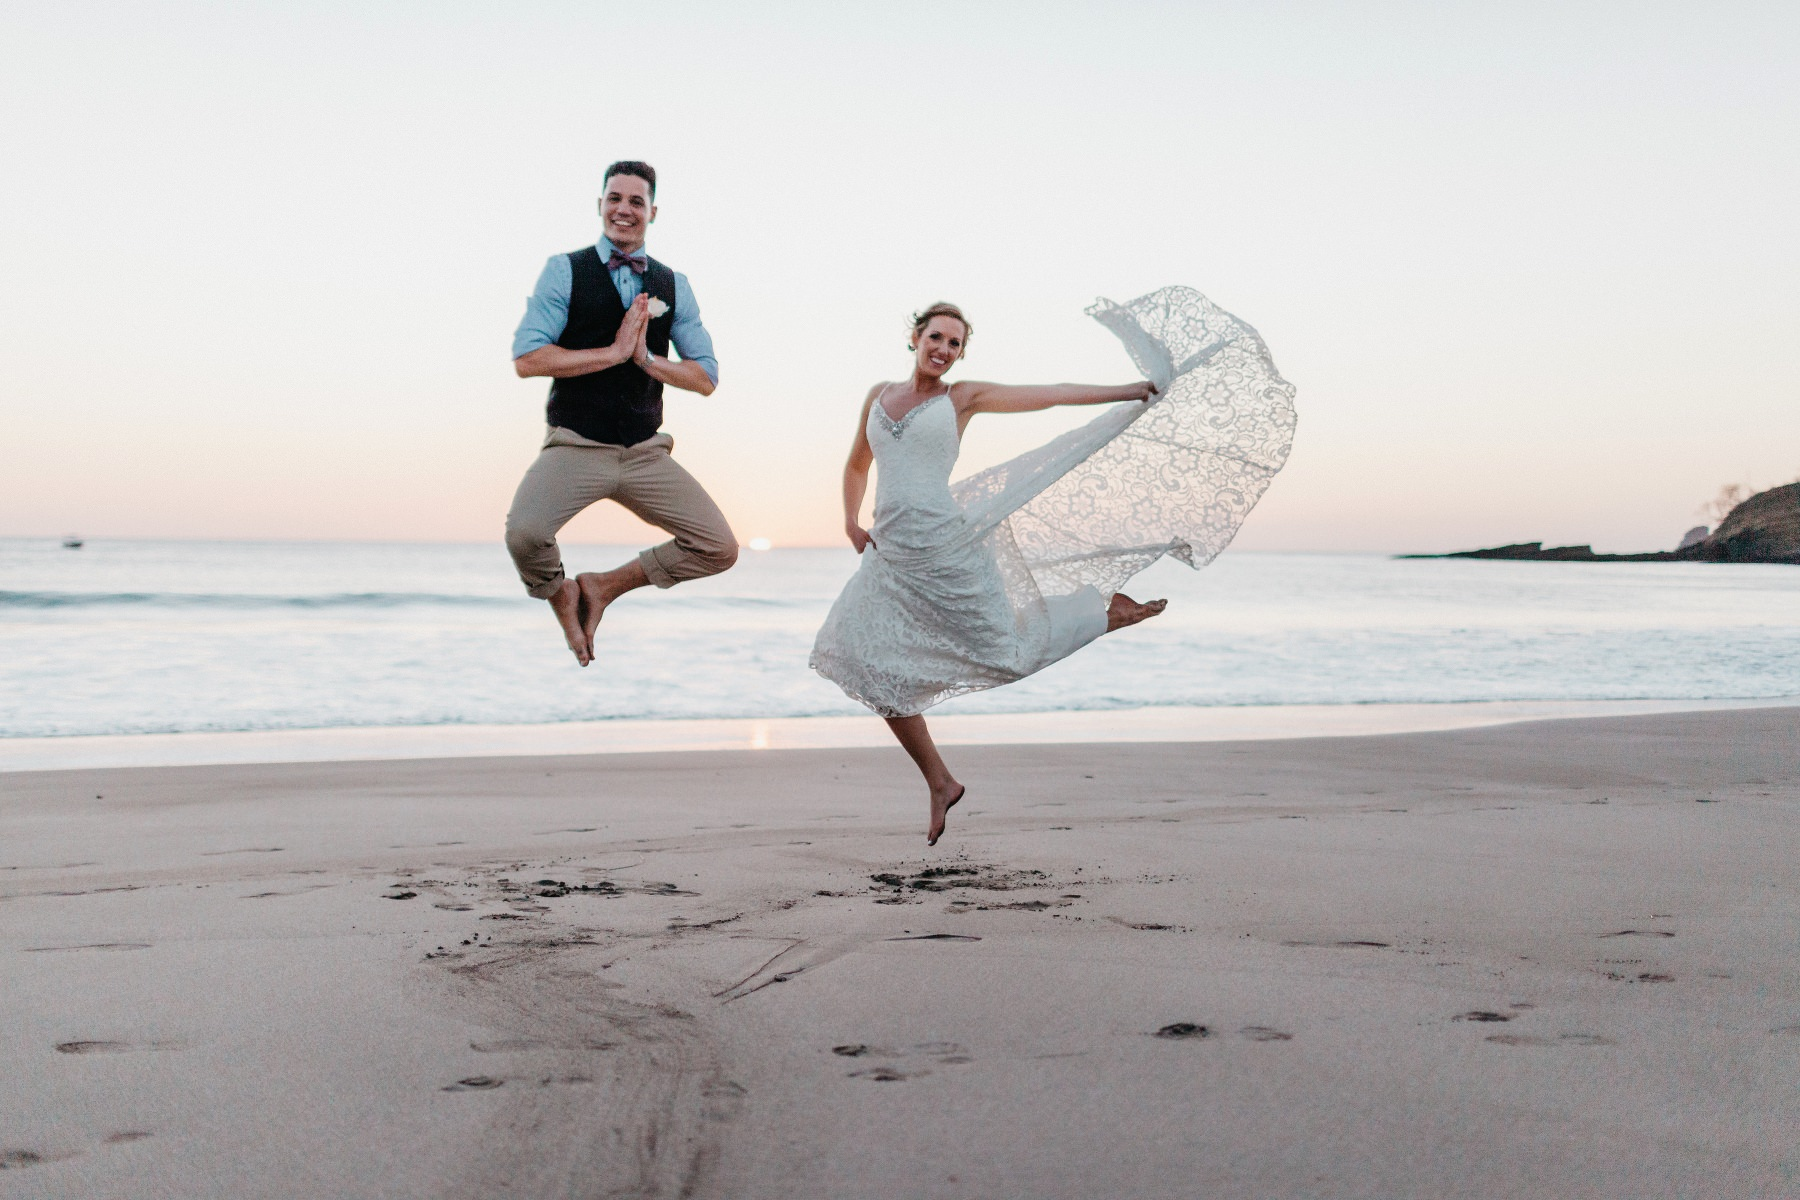 Wedding Beach jump of bride and groom